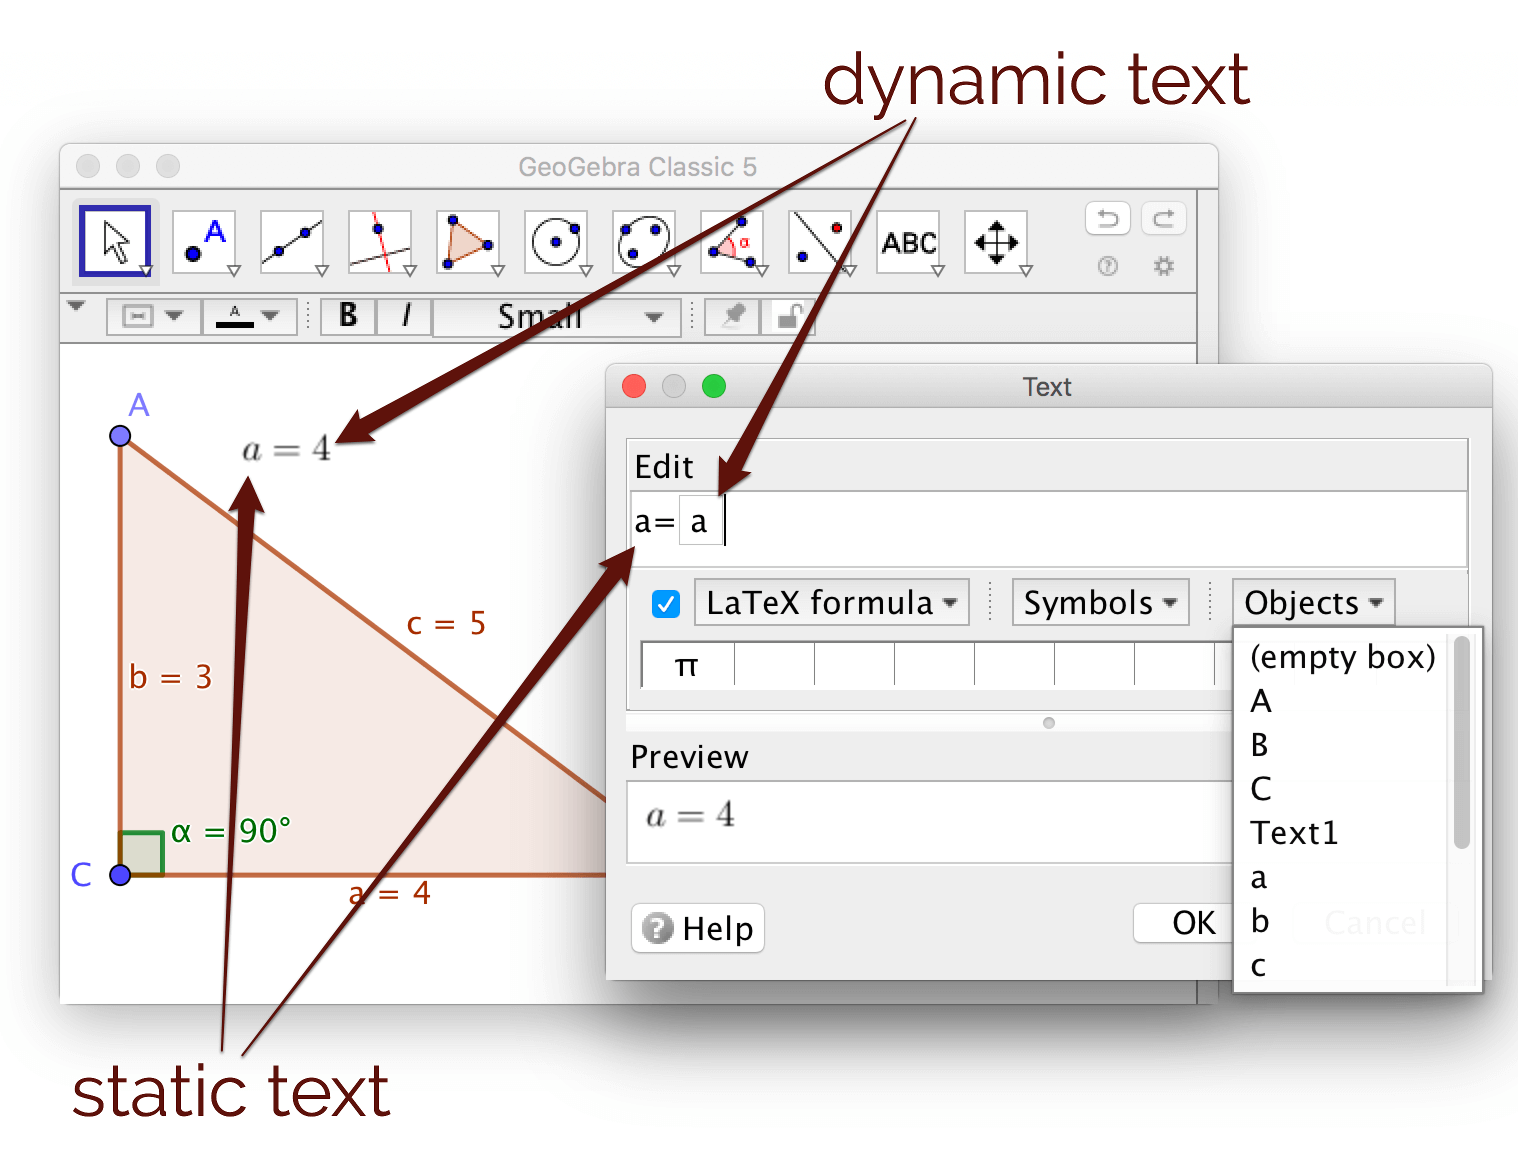 GeoGebra Tutorial - Dynamic Text, Measurement and Decorations